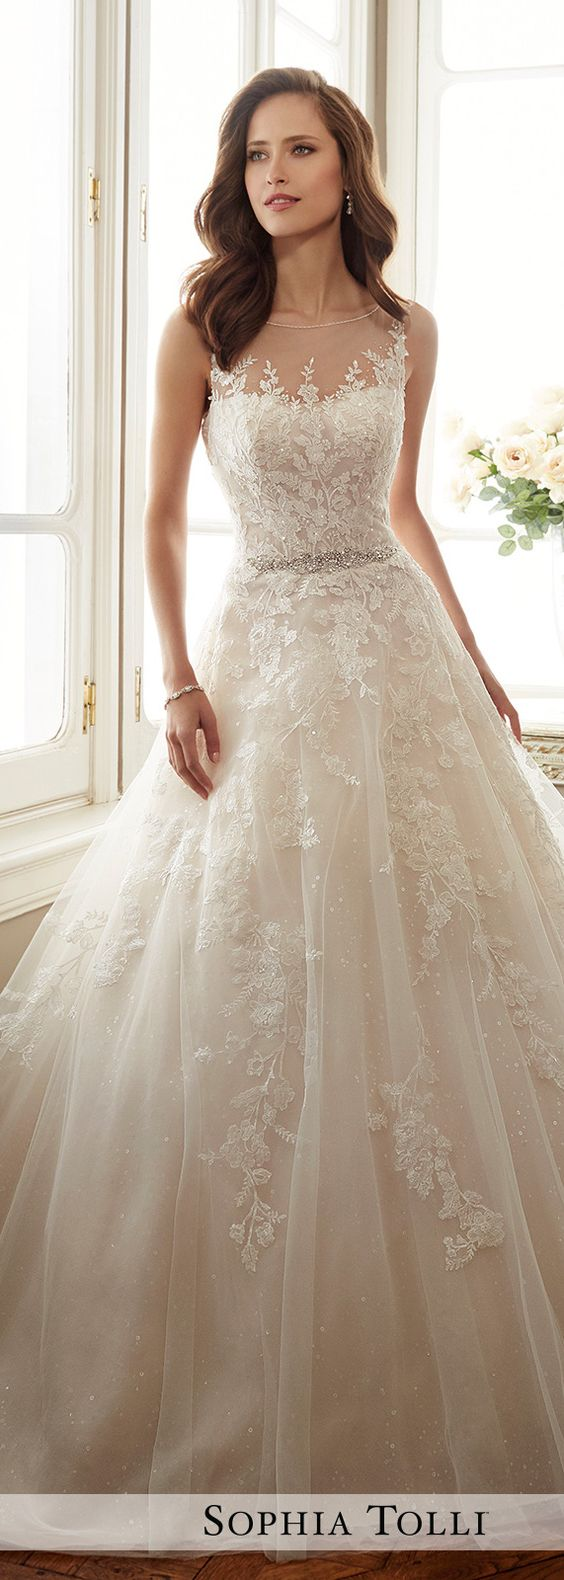 best images about wedding dresses on pinterest stella york